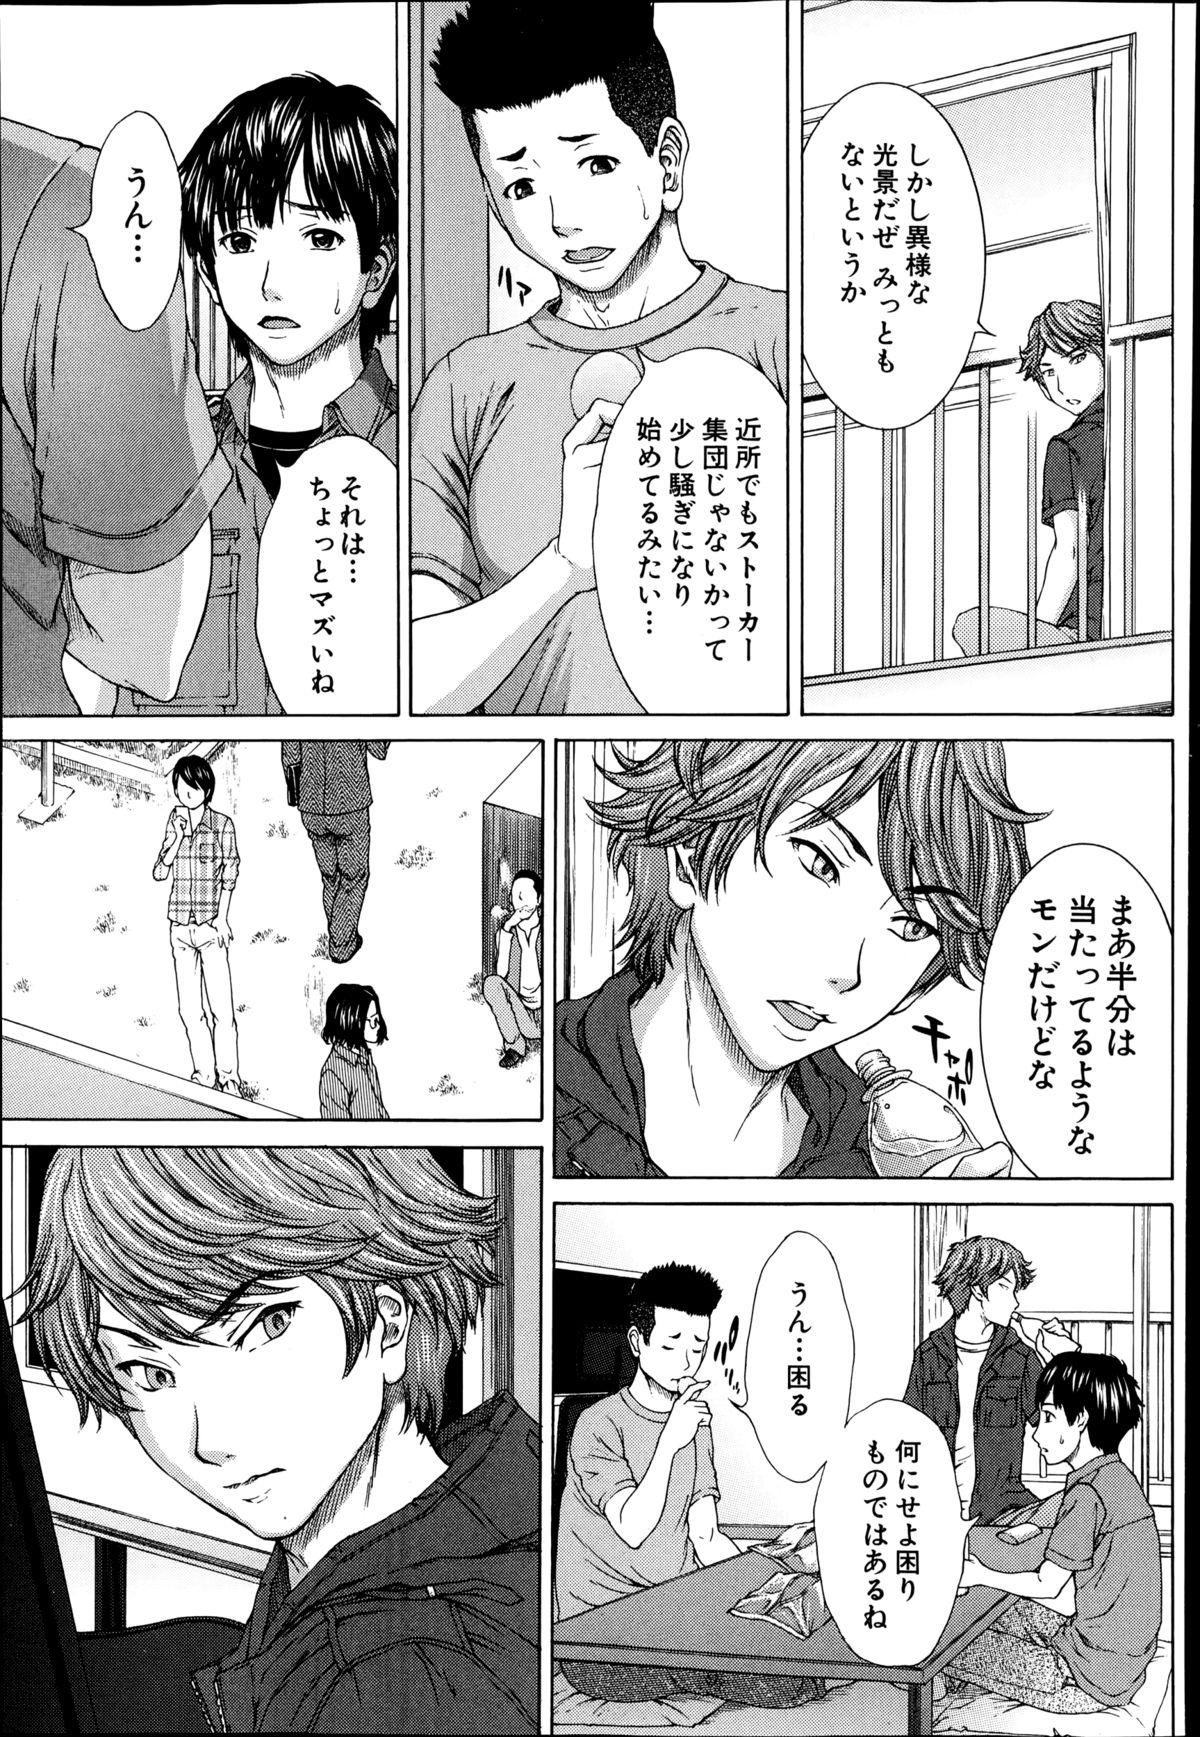 BUSTER COMIC 2014-09 252